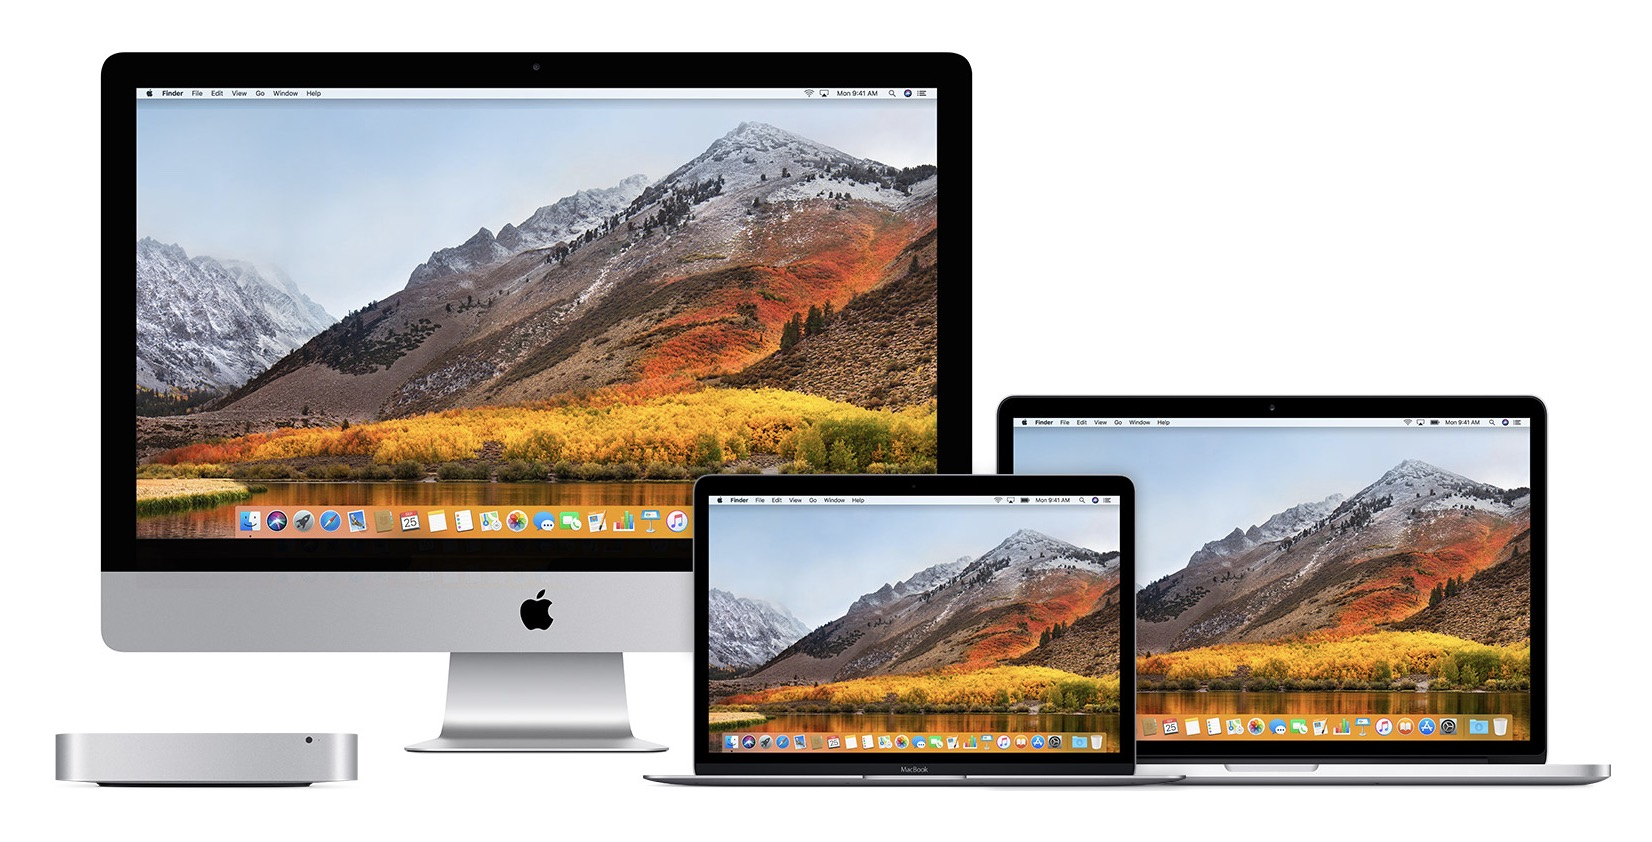 How to check your Mac's software compatibility